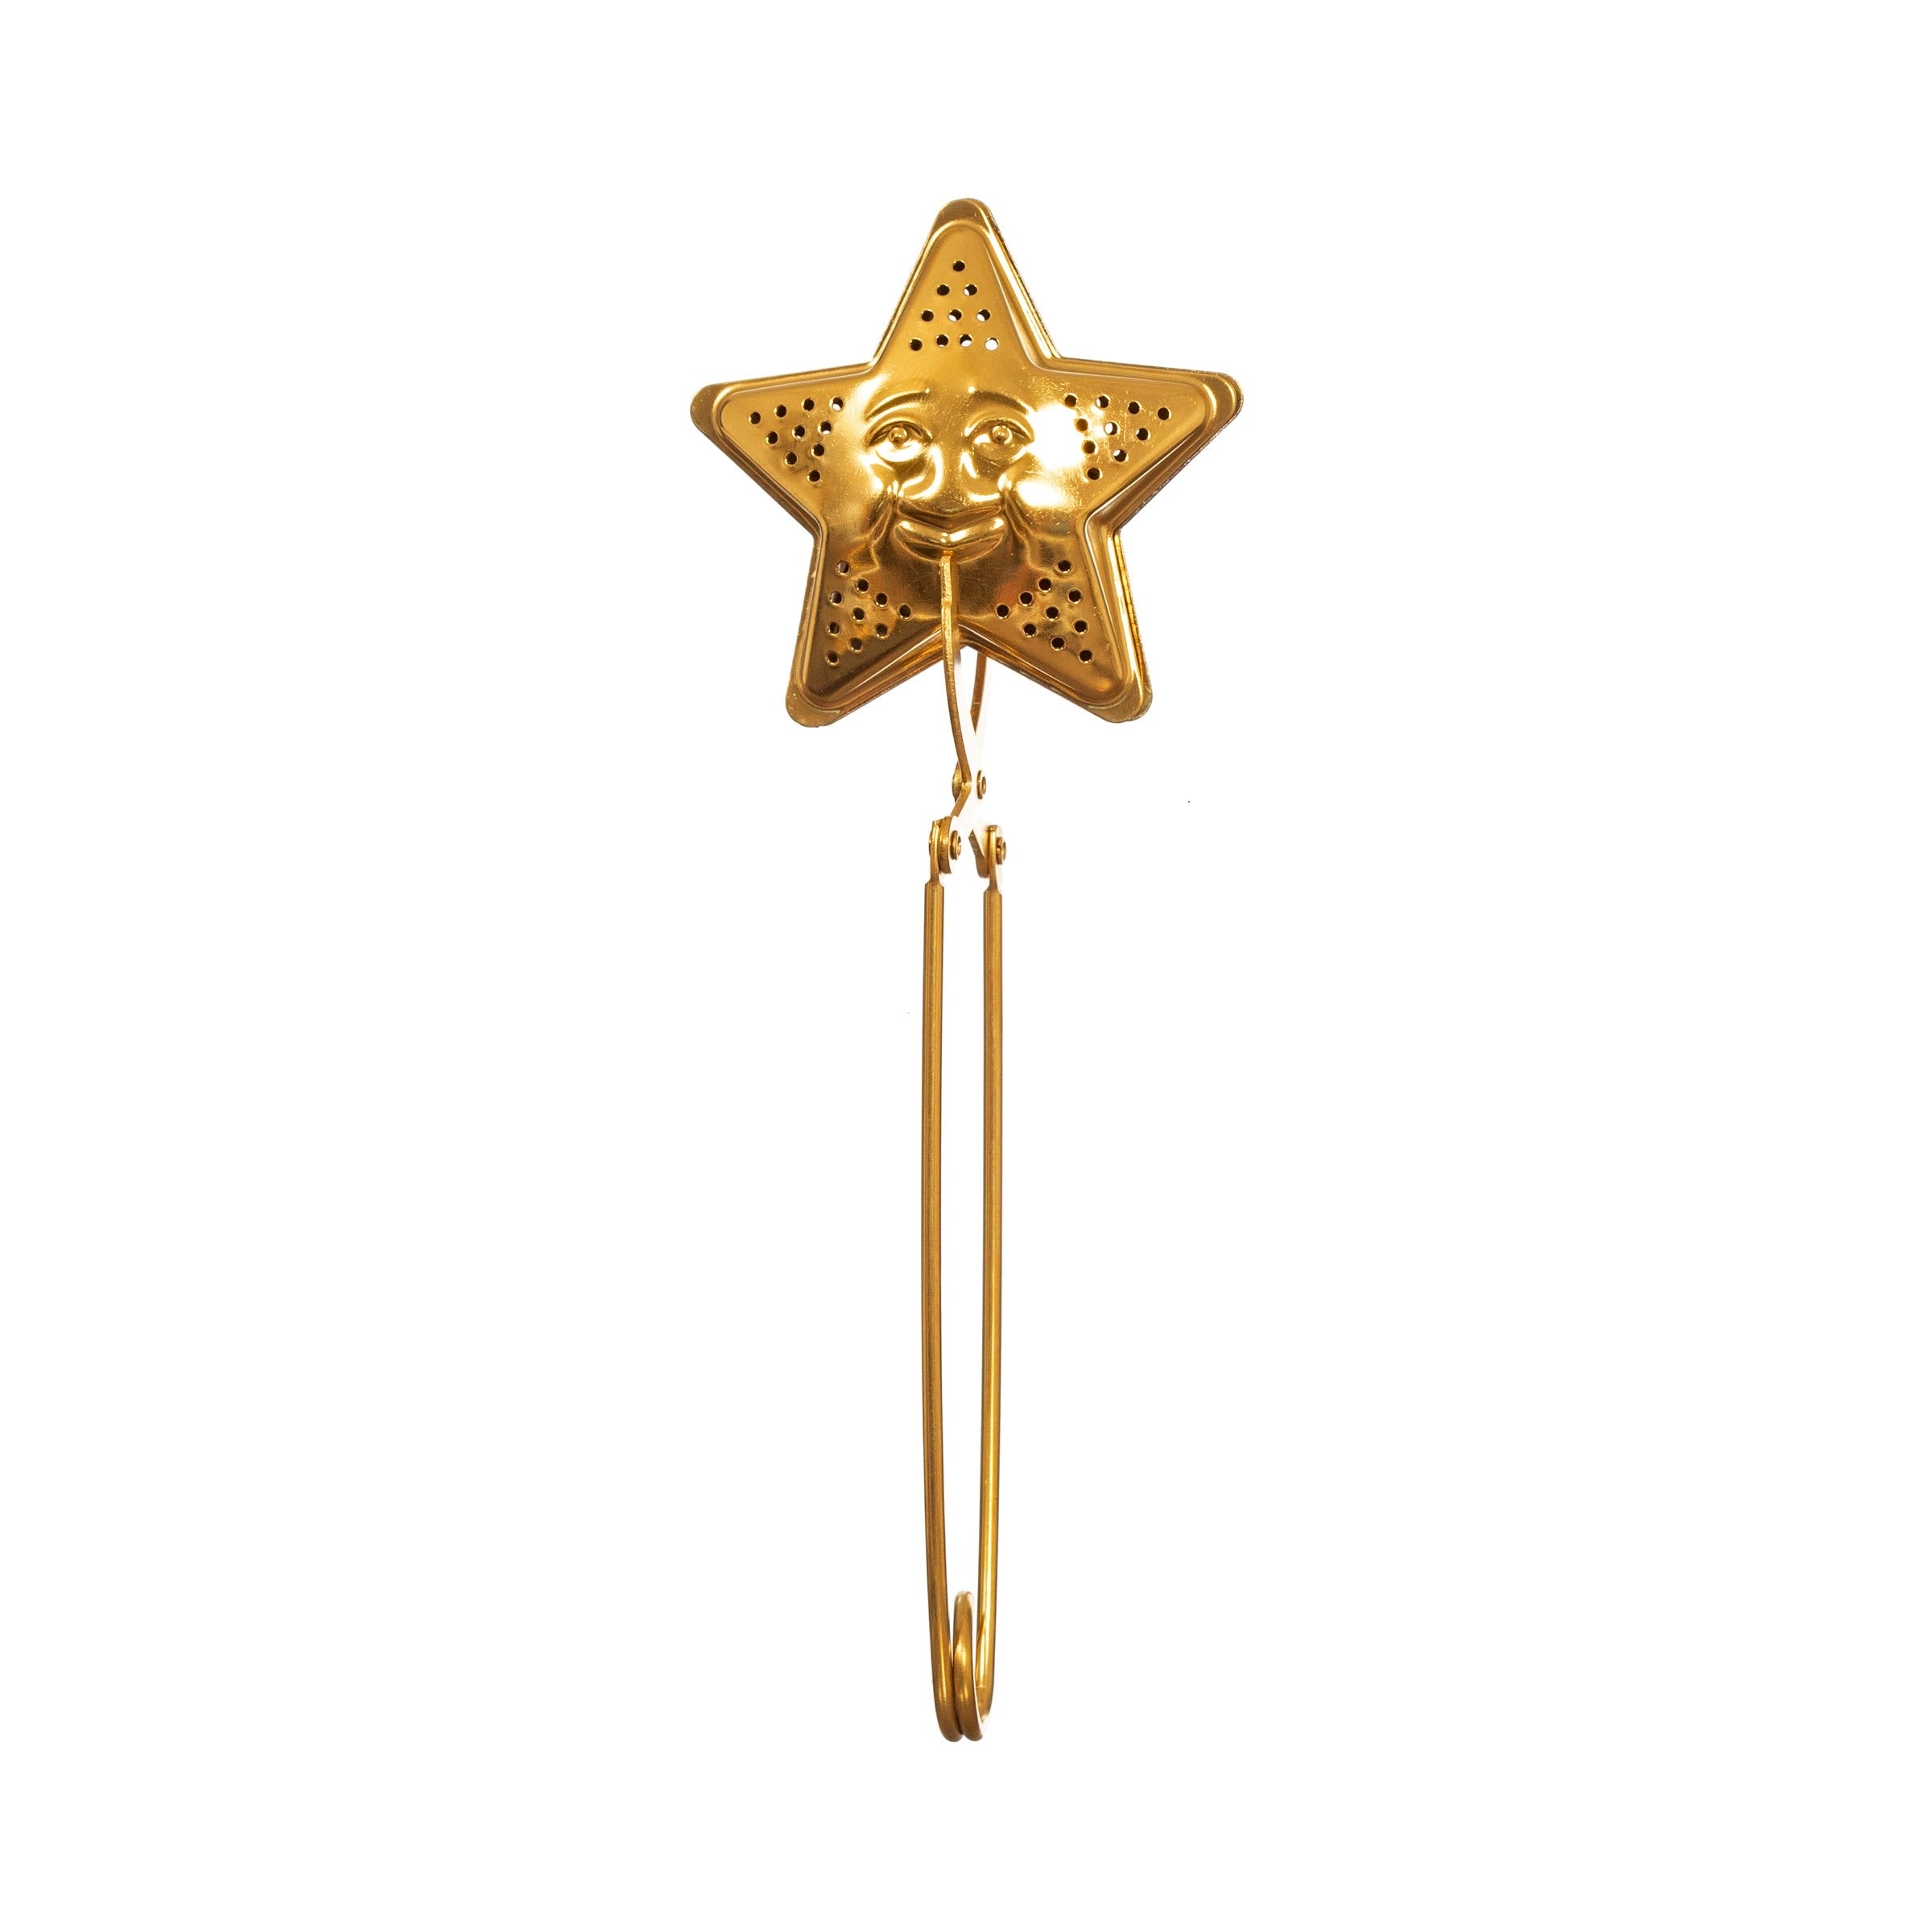 Brass Tea Infuser - Star